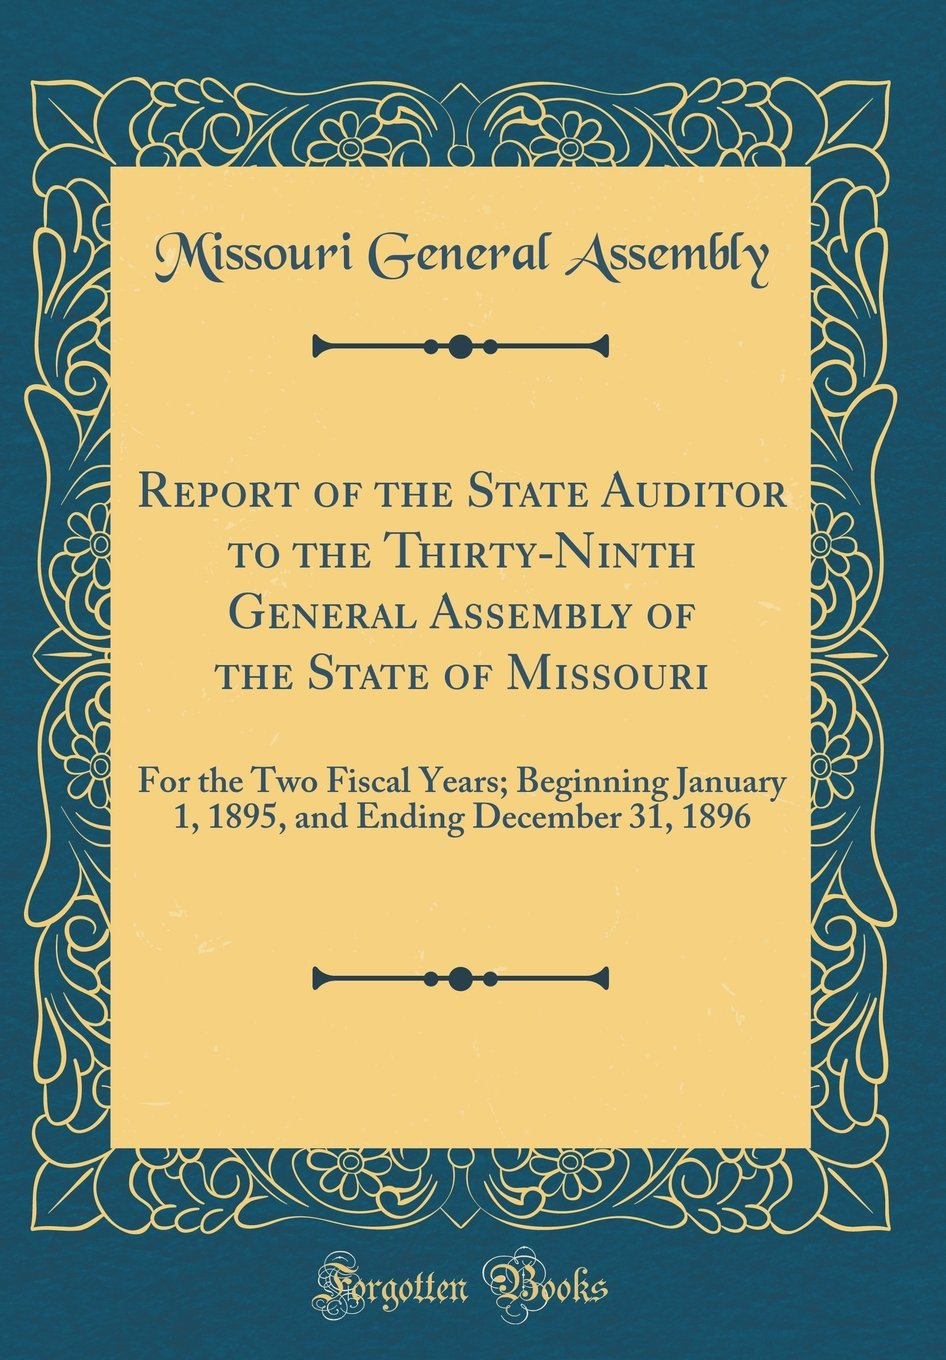 Report of the State Auditor to the Thirty-Ninth General Assembly of the State of Missouri: For the Two Fiscal Years; Beginning January 1, 1895, and Ending December 31, 1896 (Classic Reprint) pdf